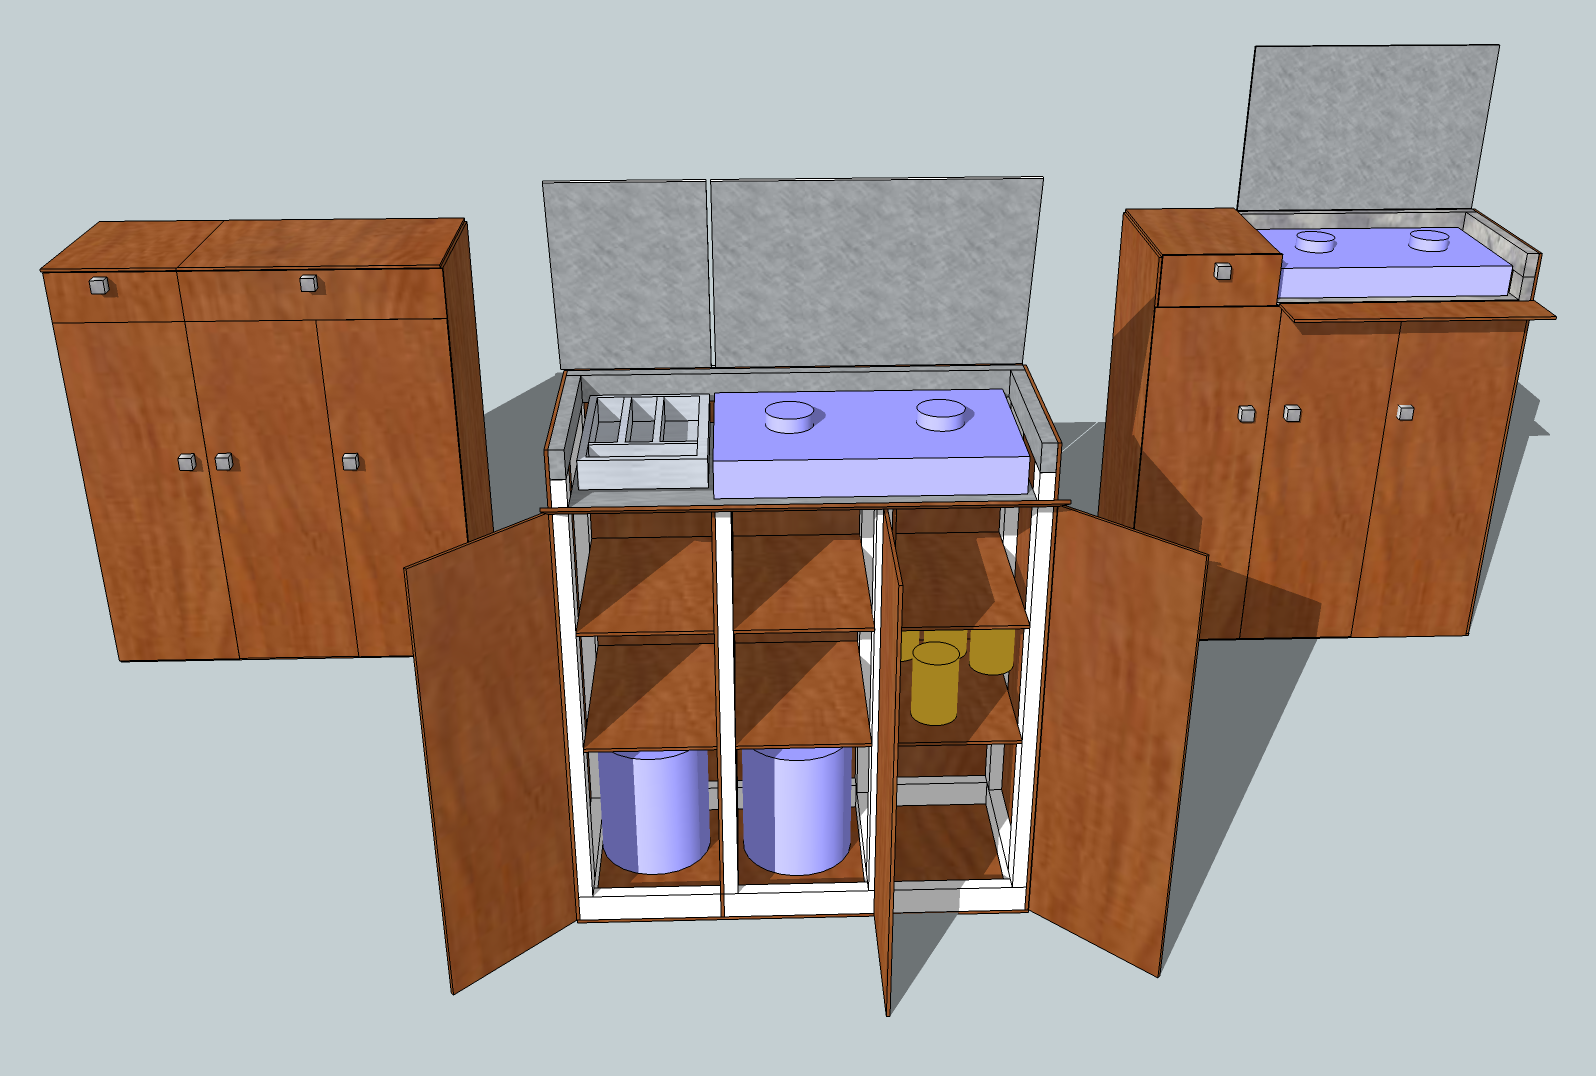 The Google Sketchup Picture Above Shows The New Design With From Left To Right The Kitchen Pod All Shut Up It S Usual State With It All Opened To Show